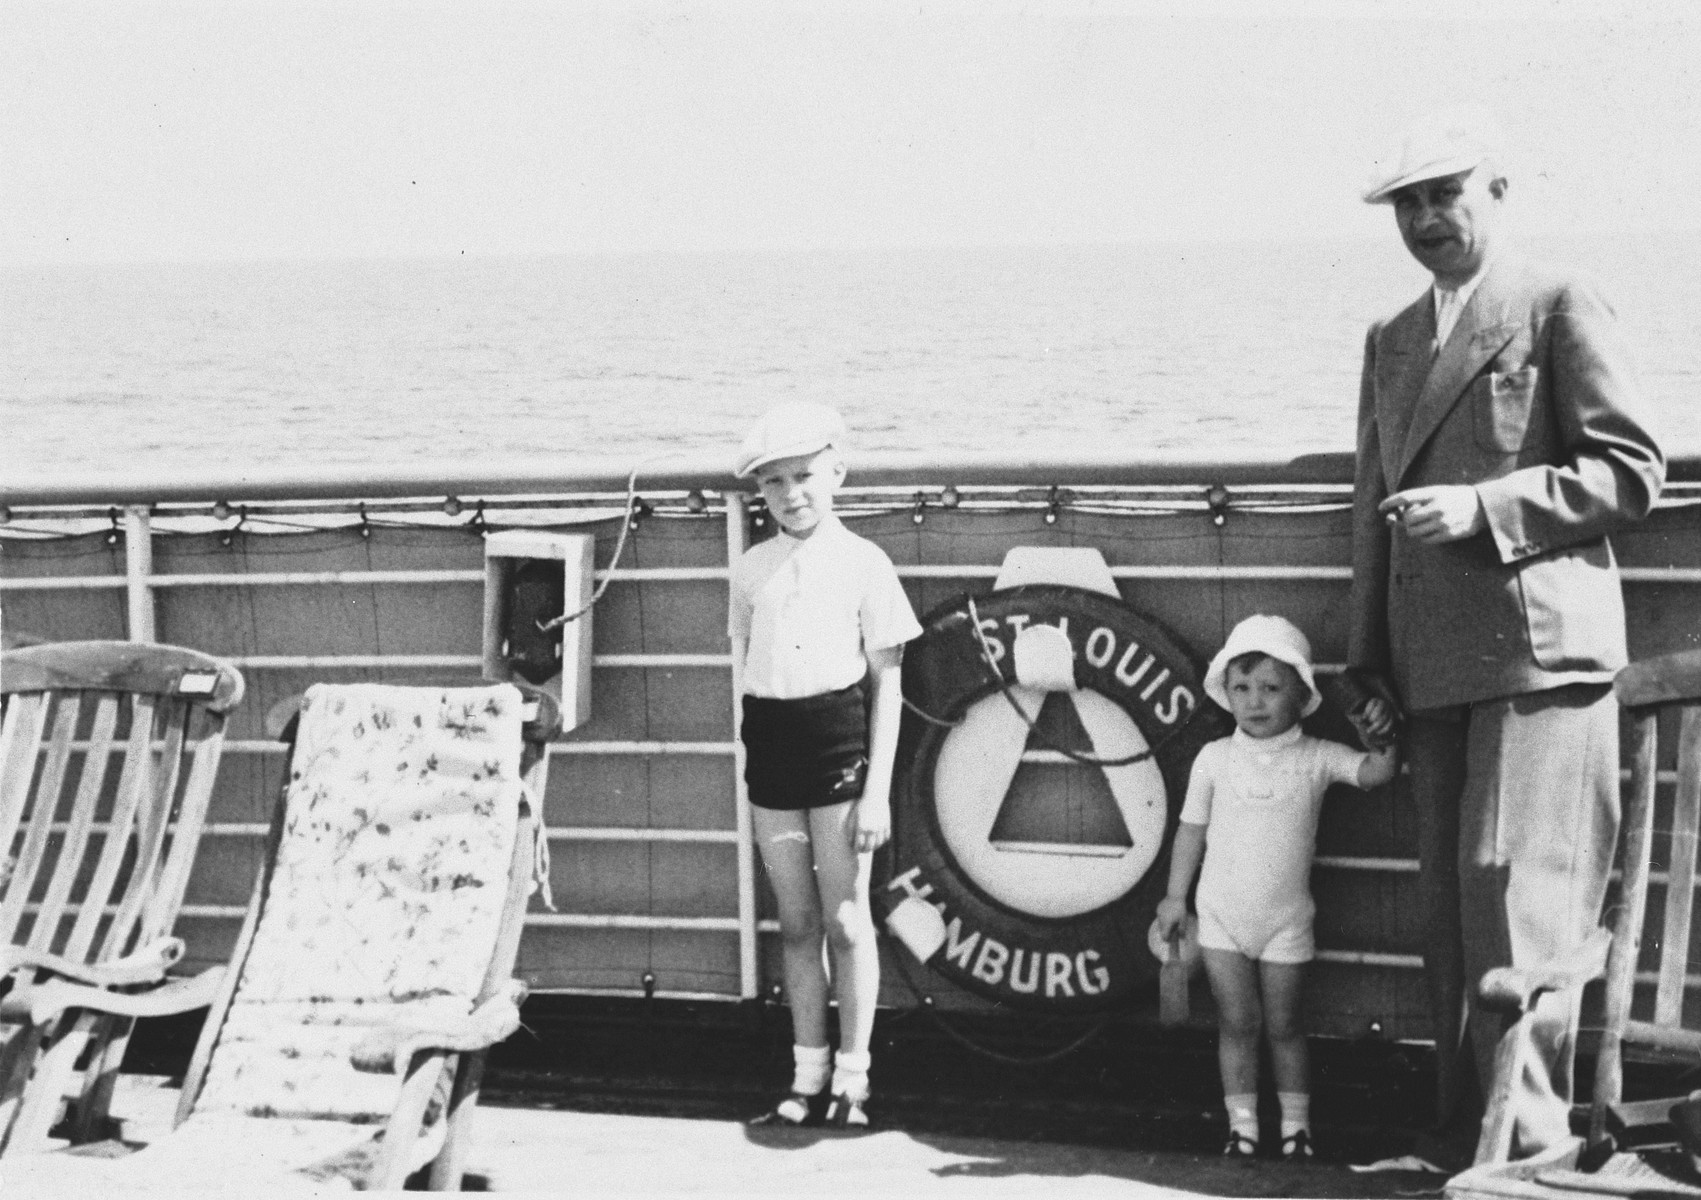 Siegfried Chraplewski poses with his two sons on the deck of the St. Louis.